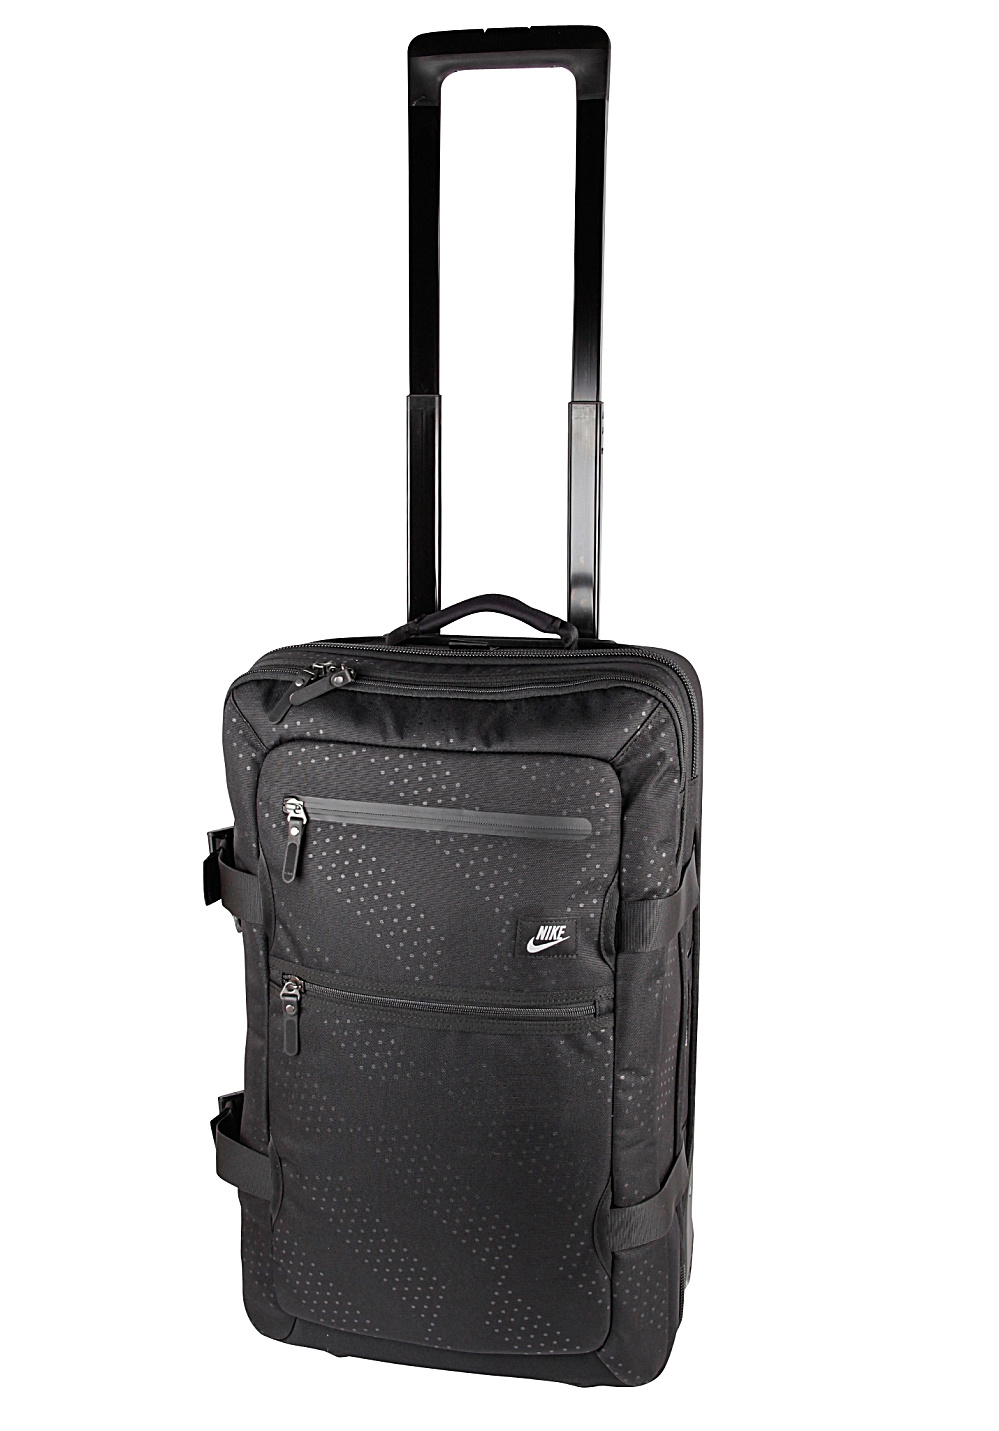 Home · NIKE SPORTSWEAR Fiftyone49 Cabin Roller - Travel Bag - Black. Back  to Overview. 1  2  3  4. Previous. Next 6aeaaa1ea3178